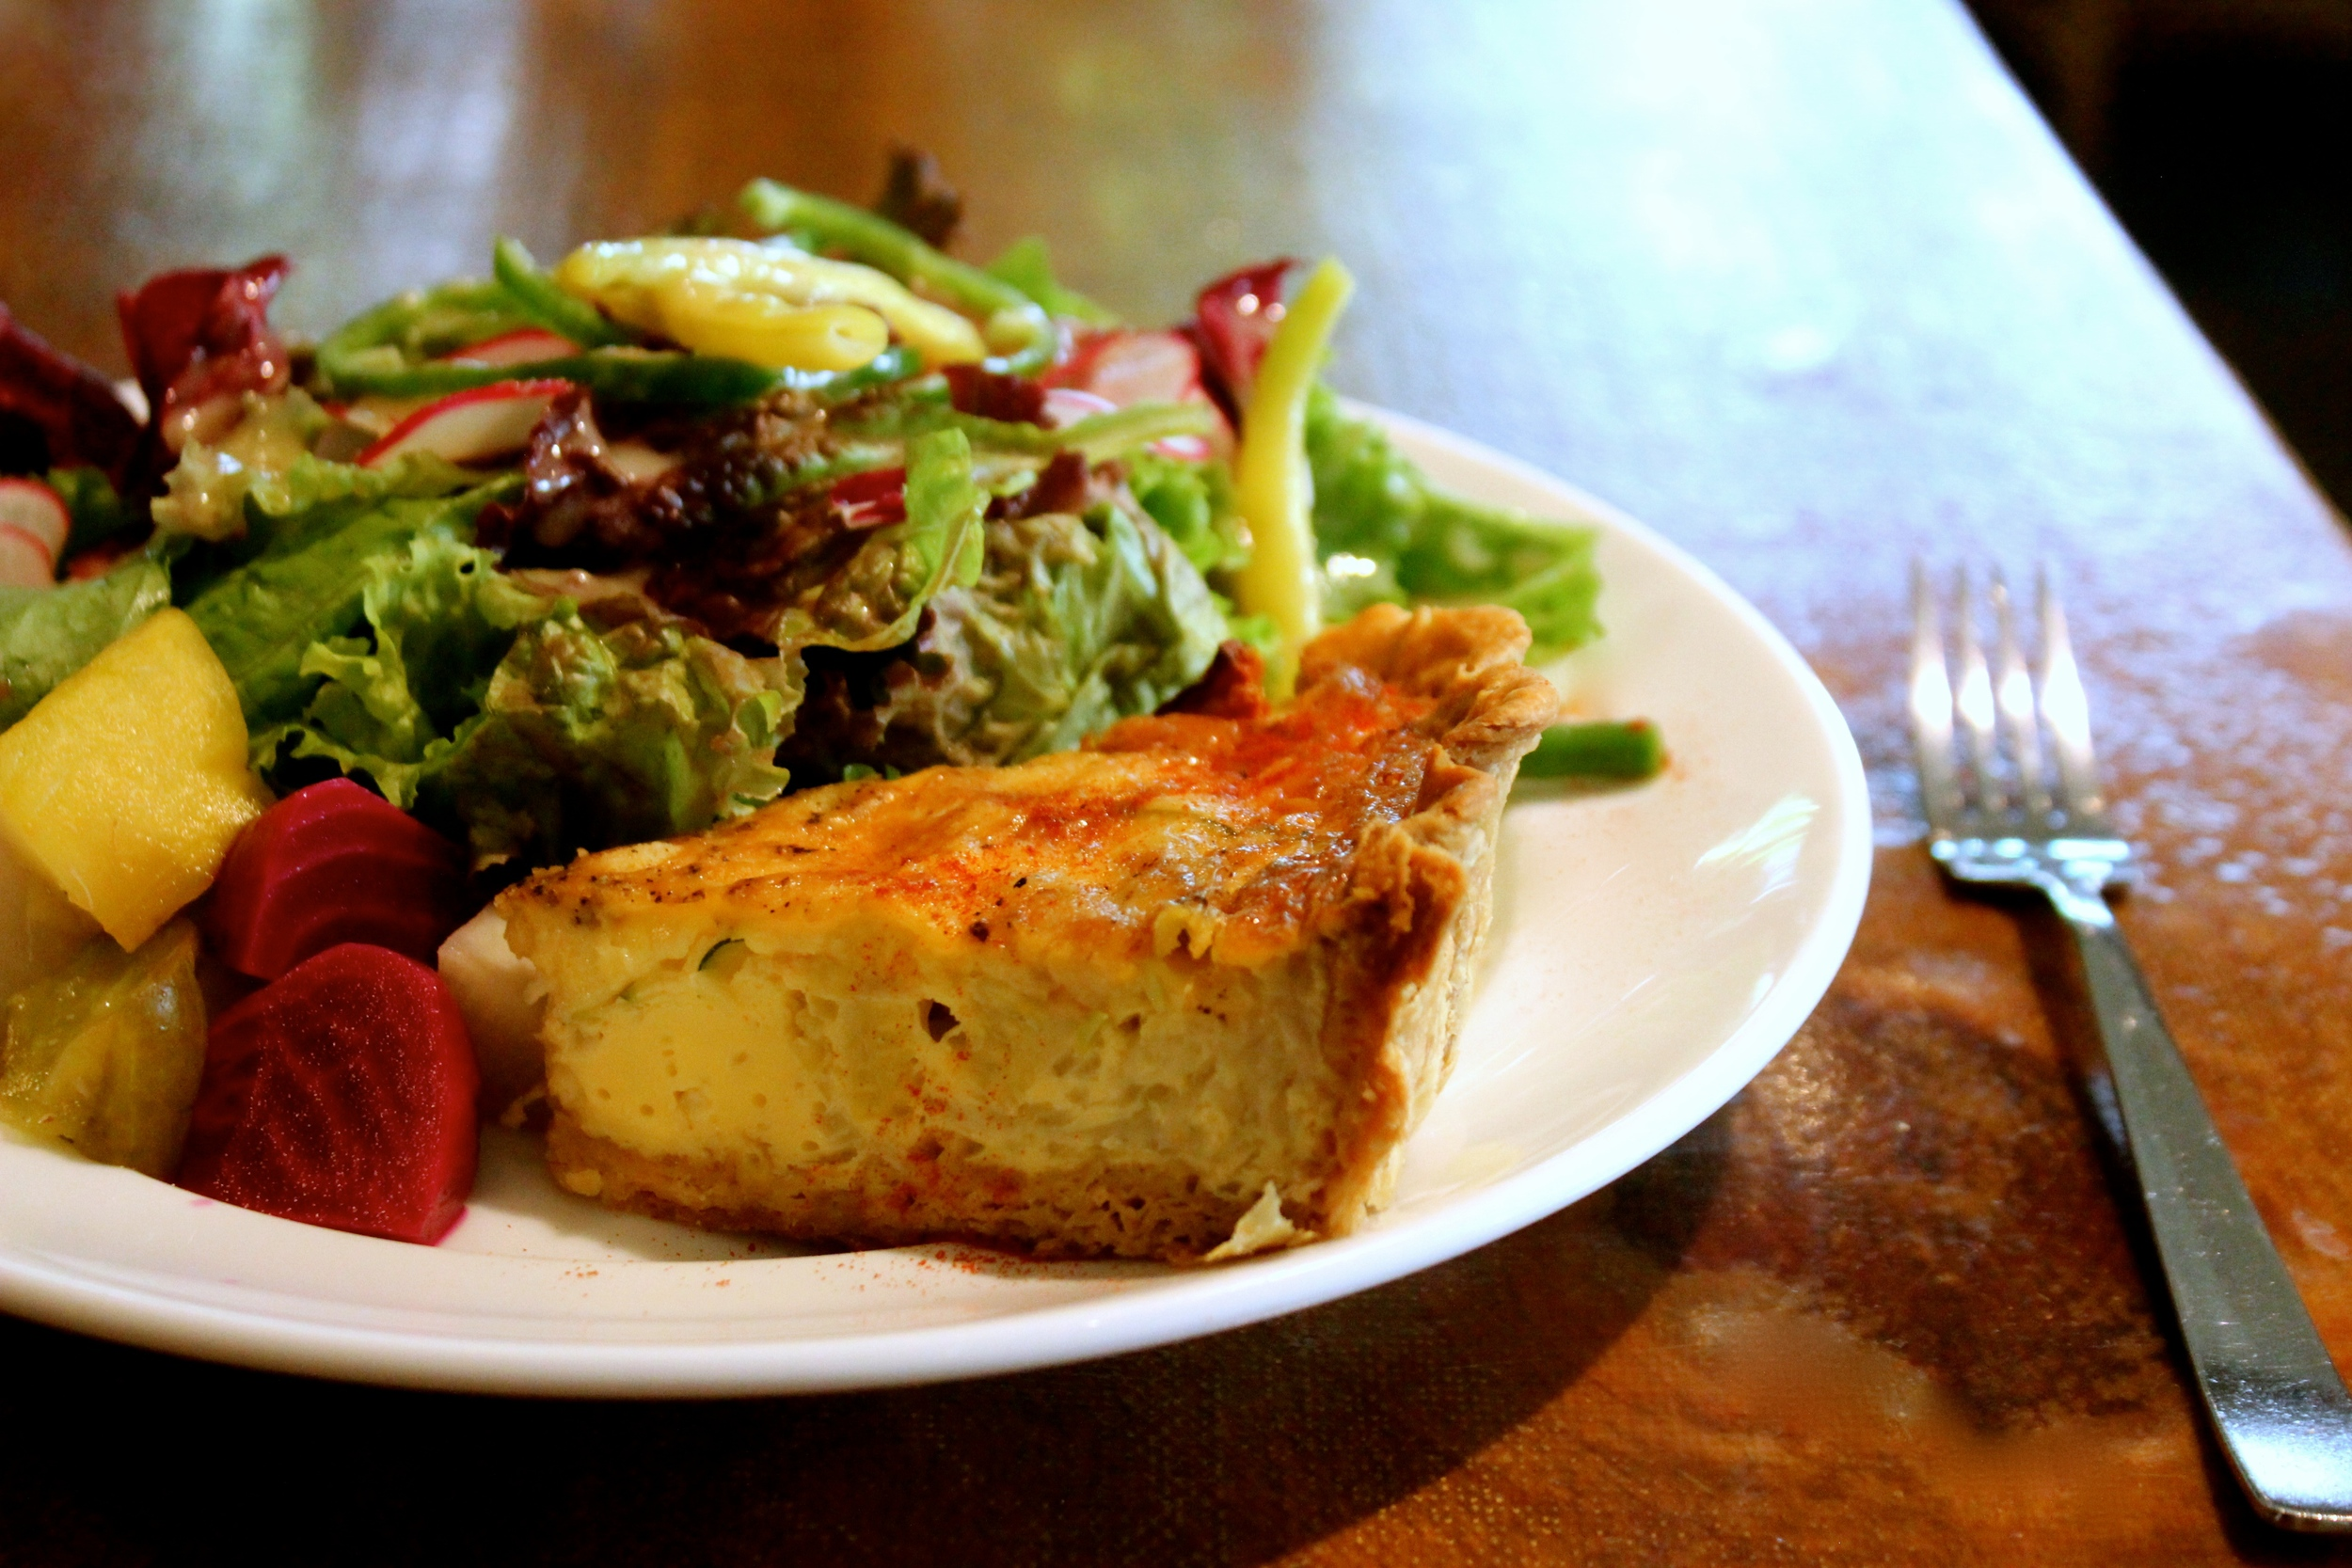 8th Anniversary Special menu:Homemade Quiche with Organic Summer Vegetables.